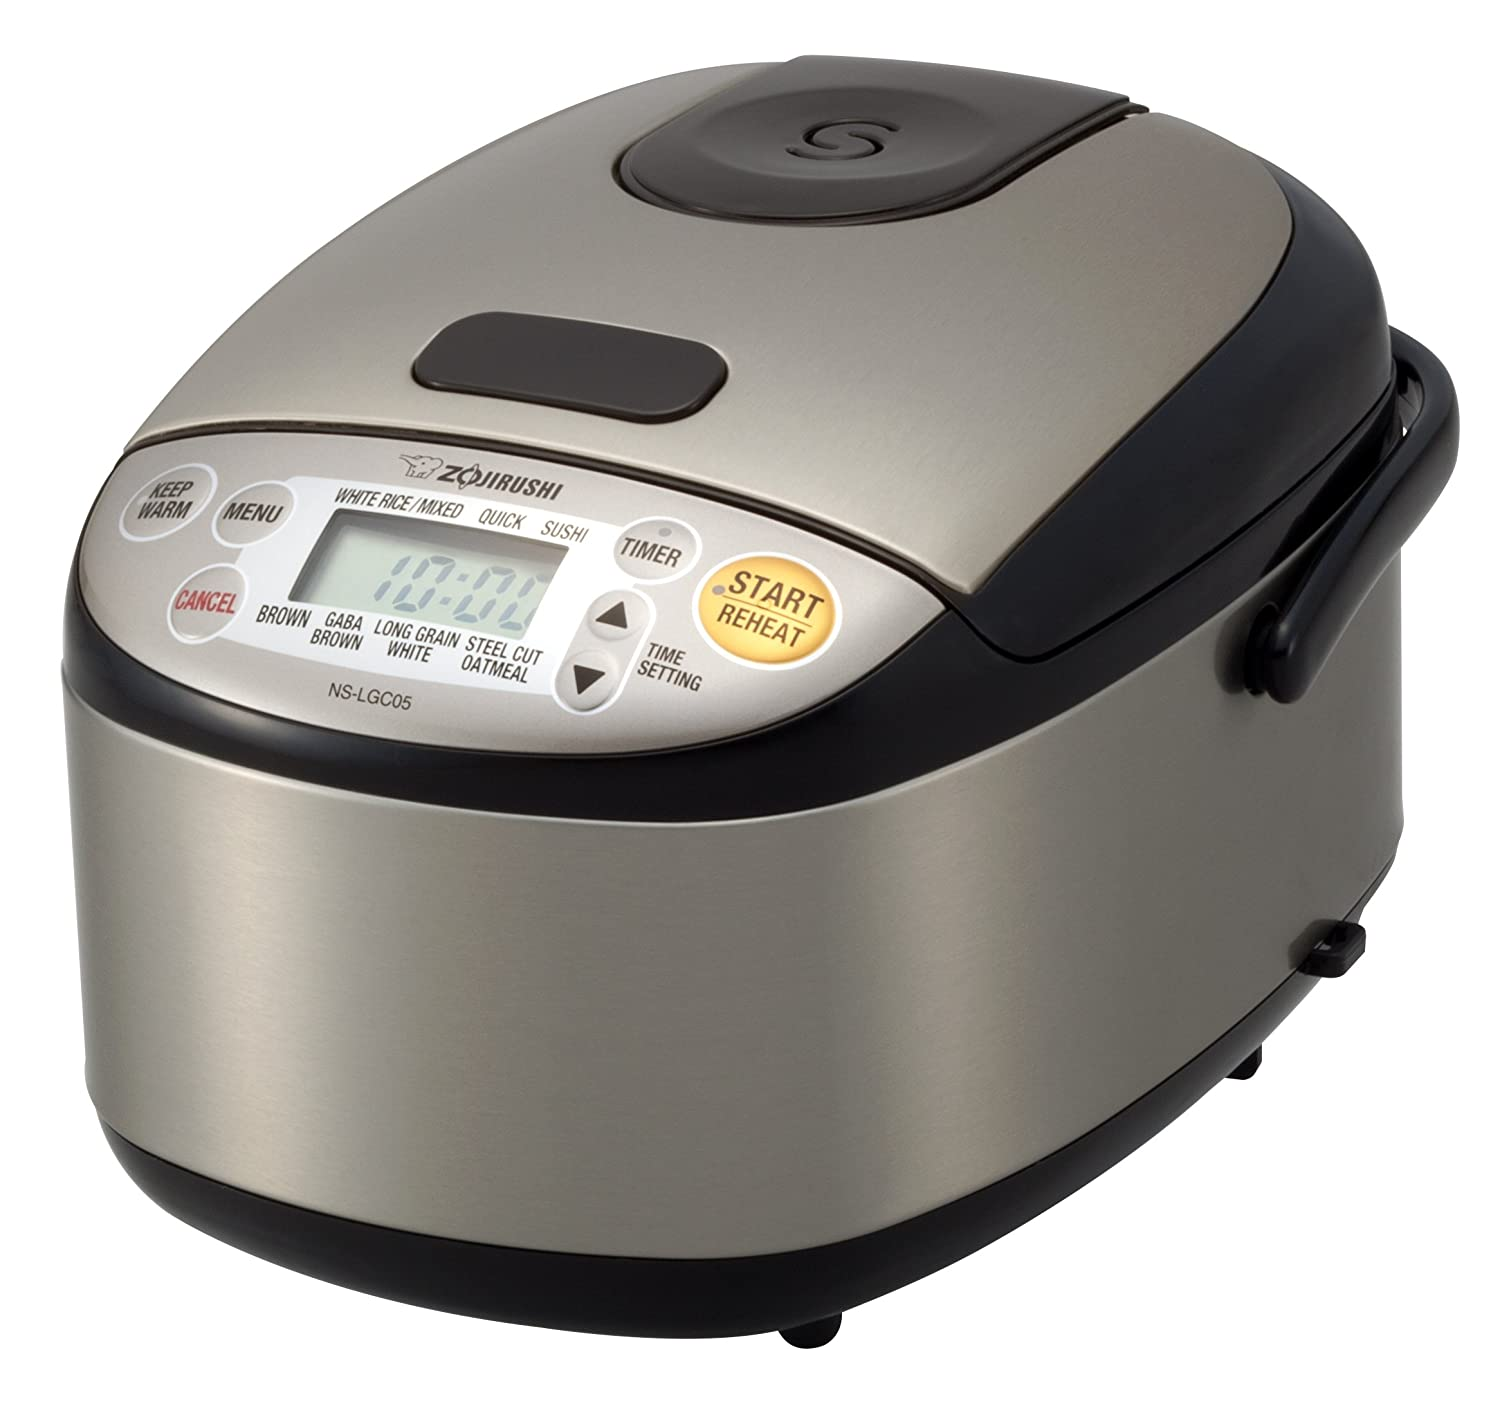 Zojirushi NS-LGC05XB Micom Rice Cooker and Warmer